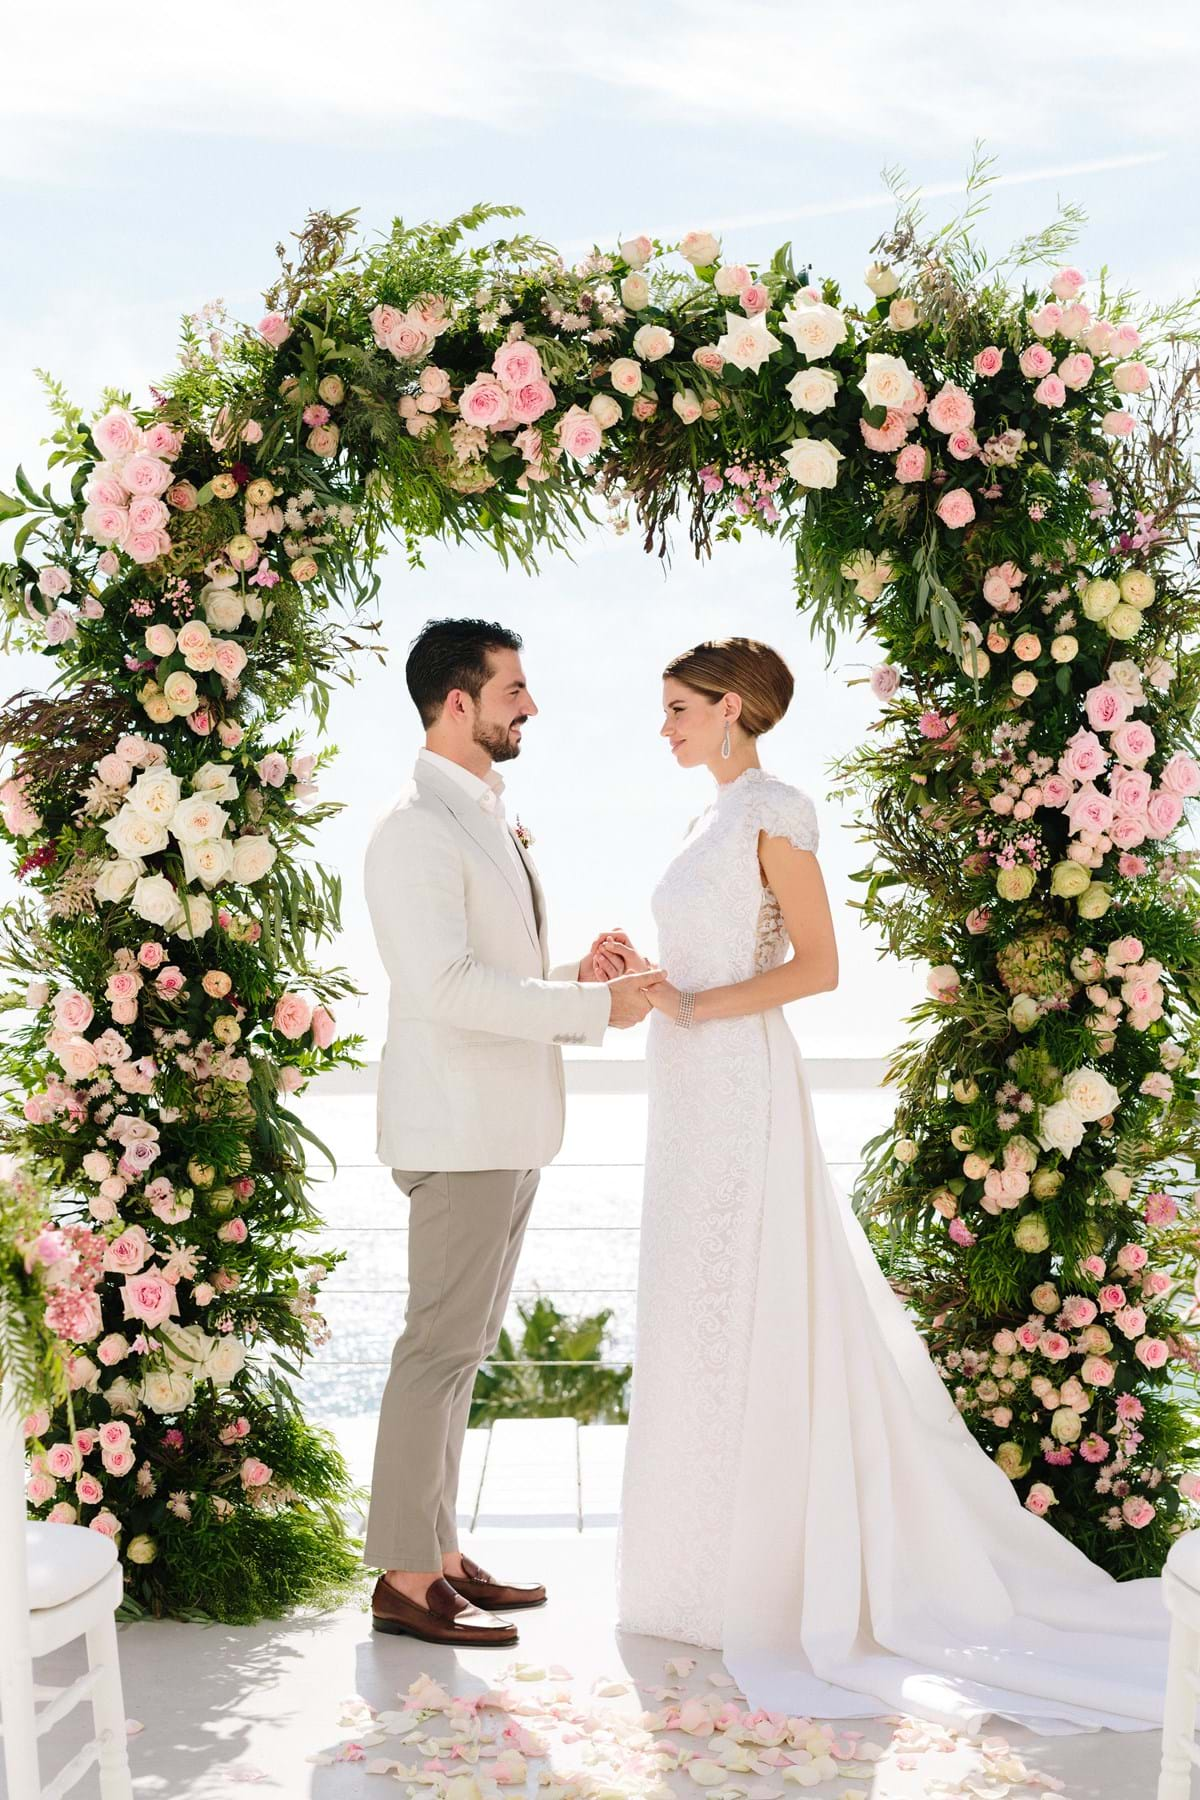 Wedding Flower Inspiration for a Luxury Destination Wedding in Mykonos